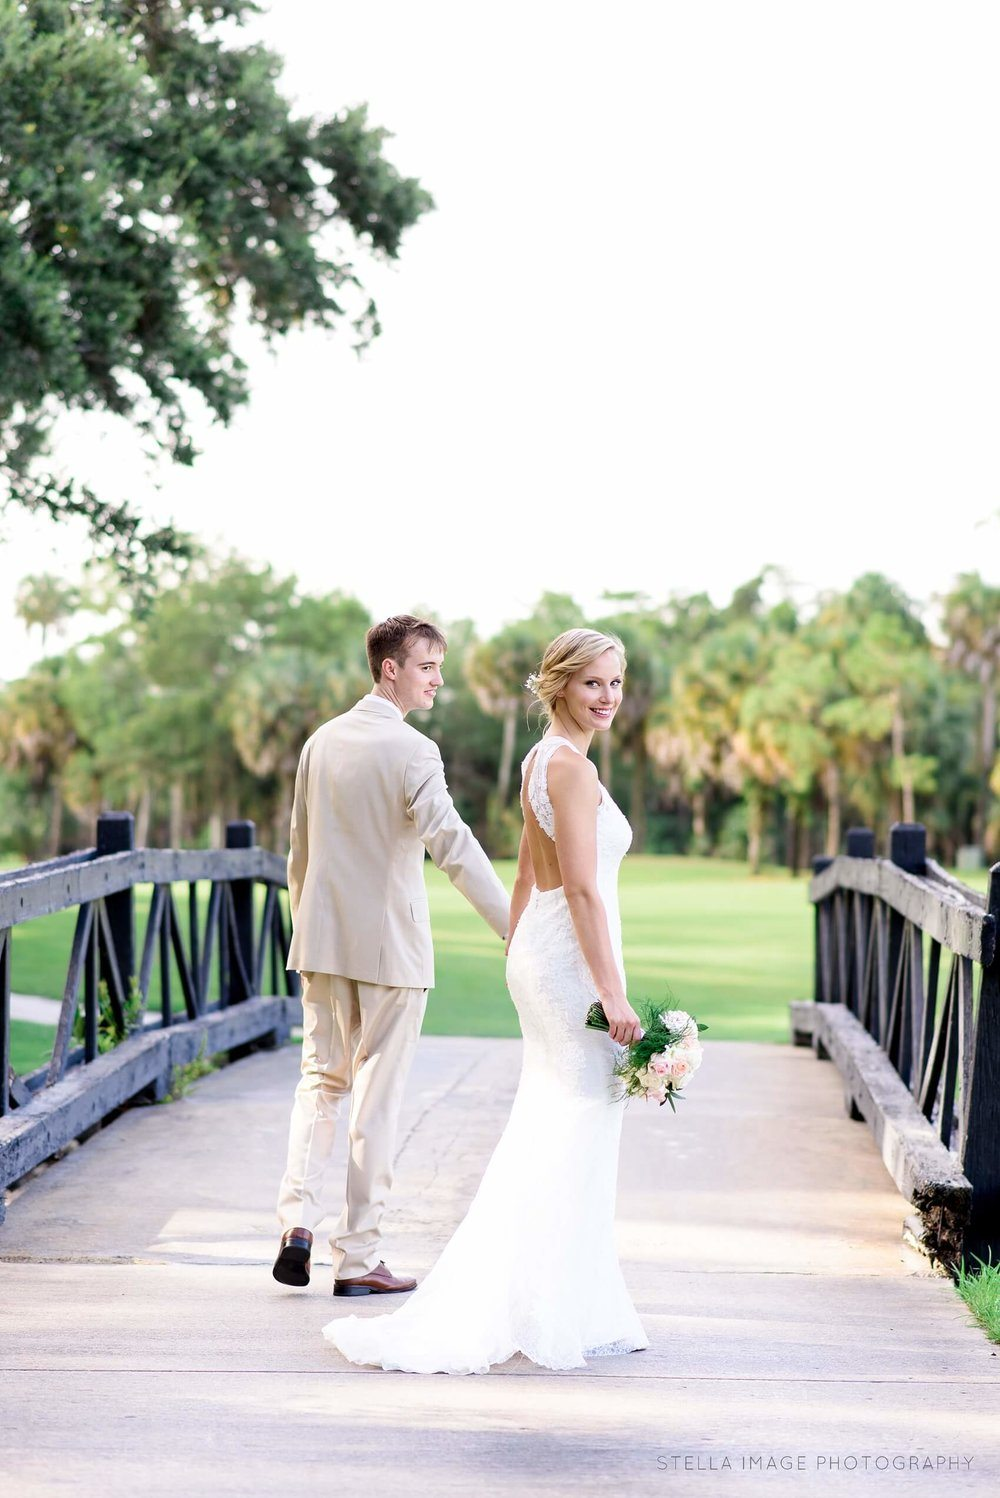 Bride and Groom at Mayacoo Lakes Country Club and Golf Course in West Palm Beach